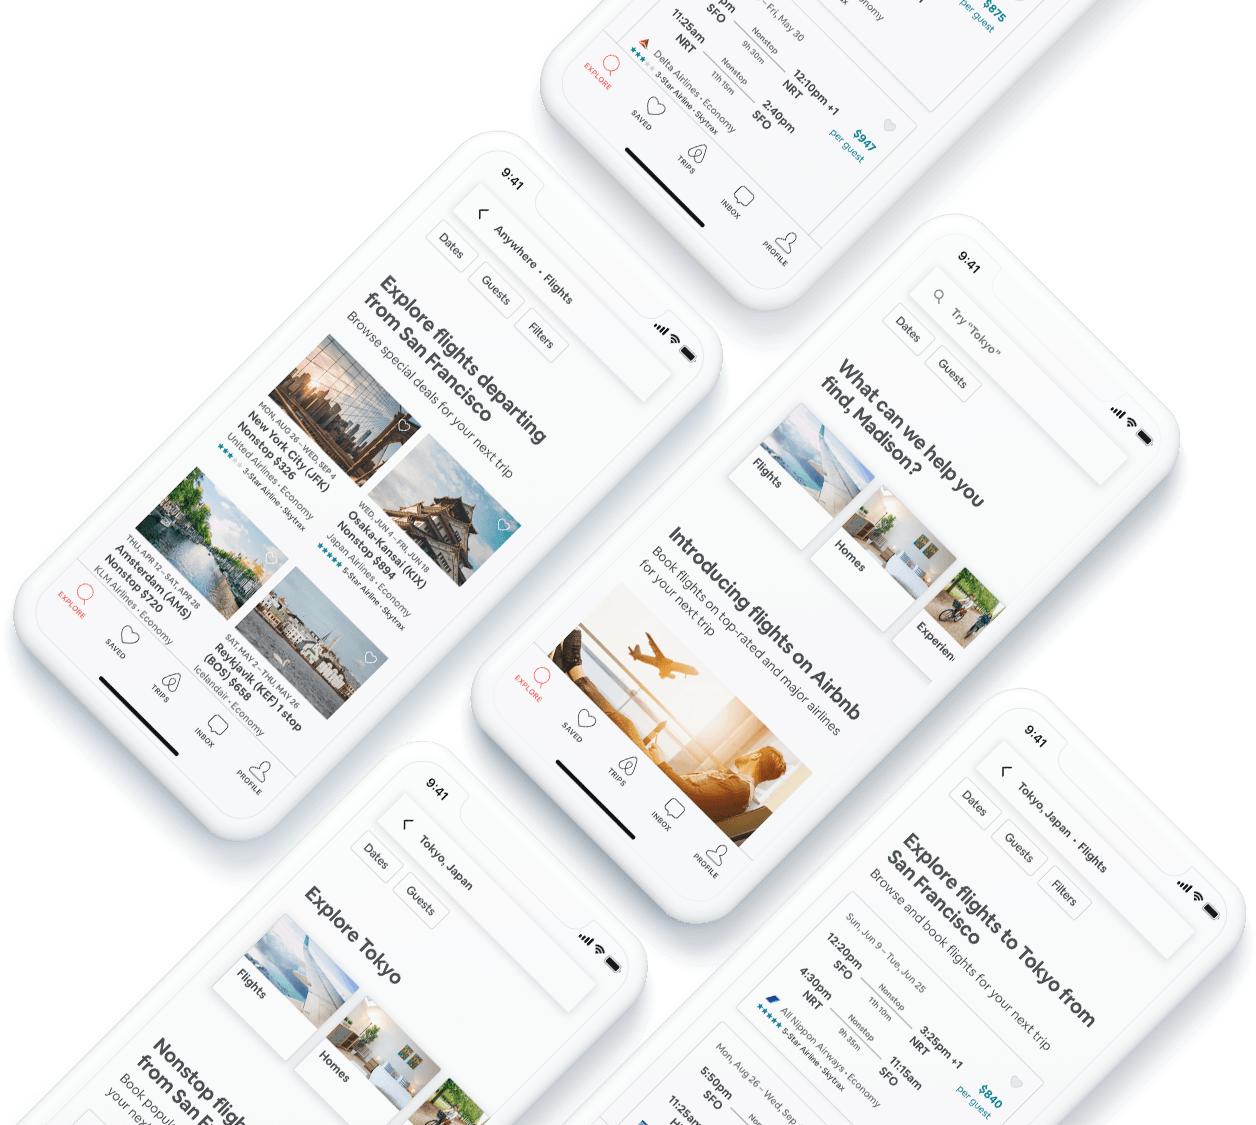 Airbnb-iOS-app-iPhoneX-mockup-for-slides